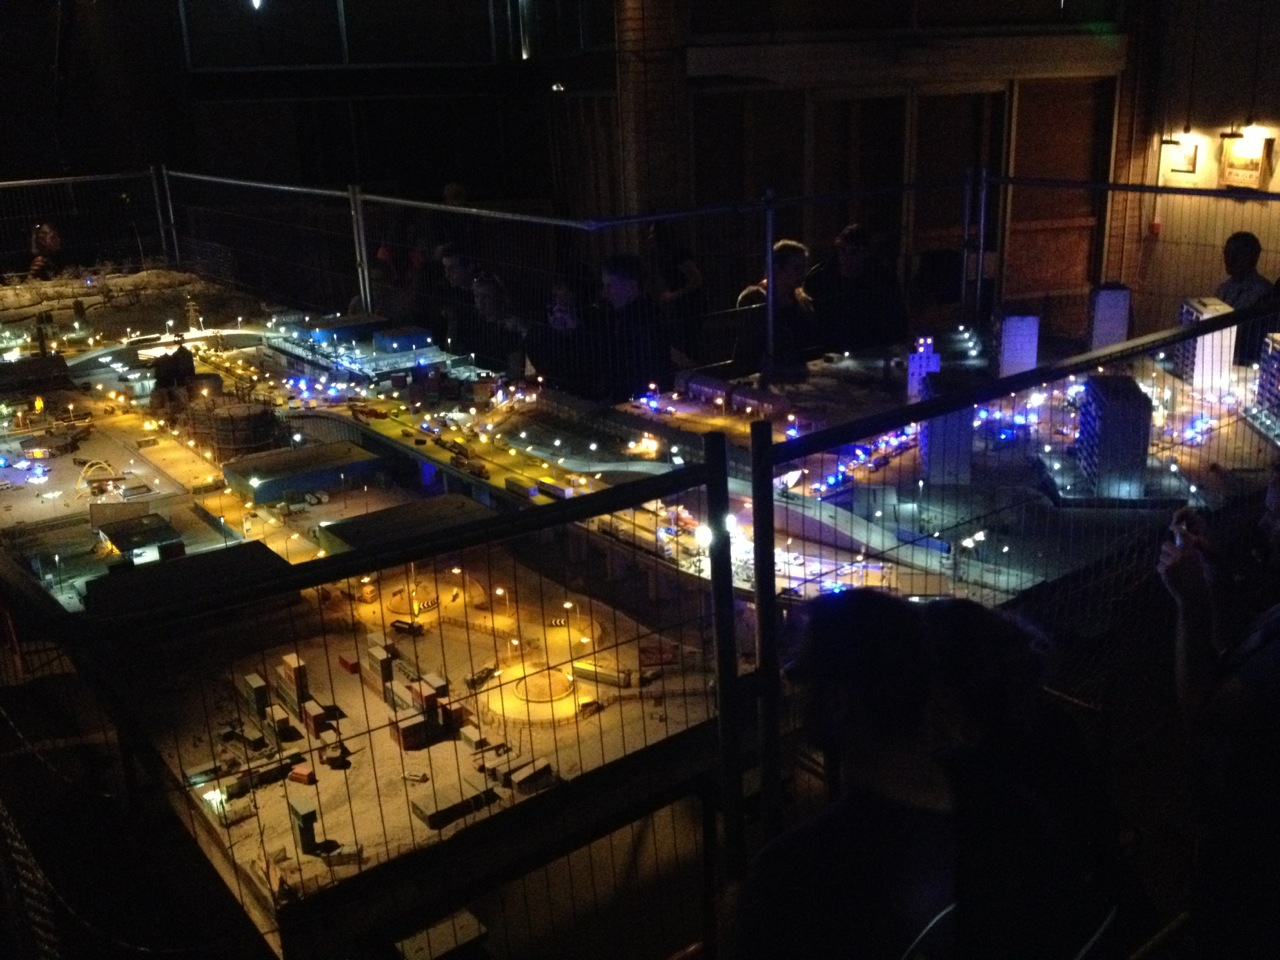 Work by Jimmy Cauty